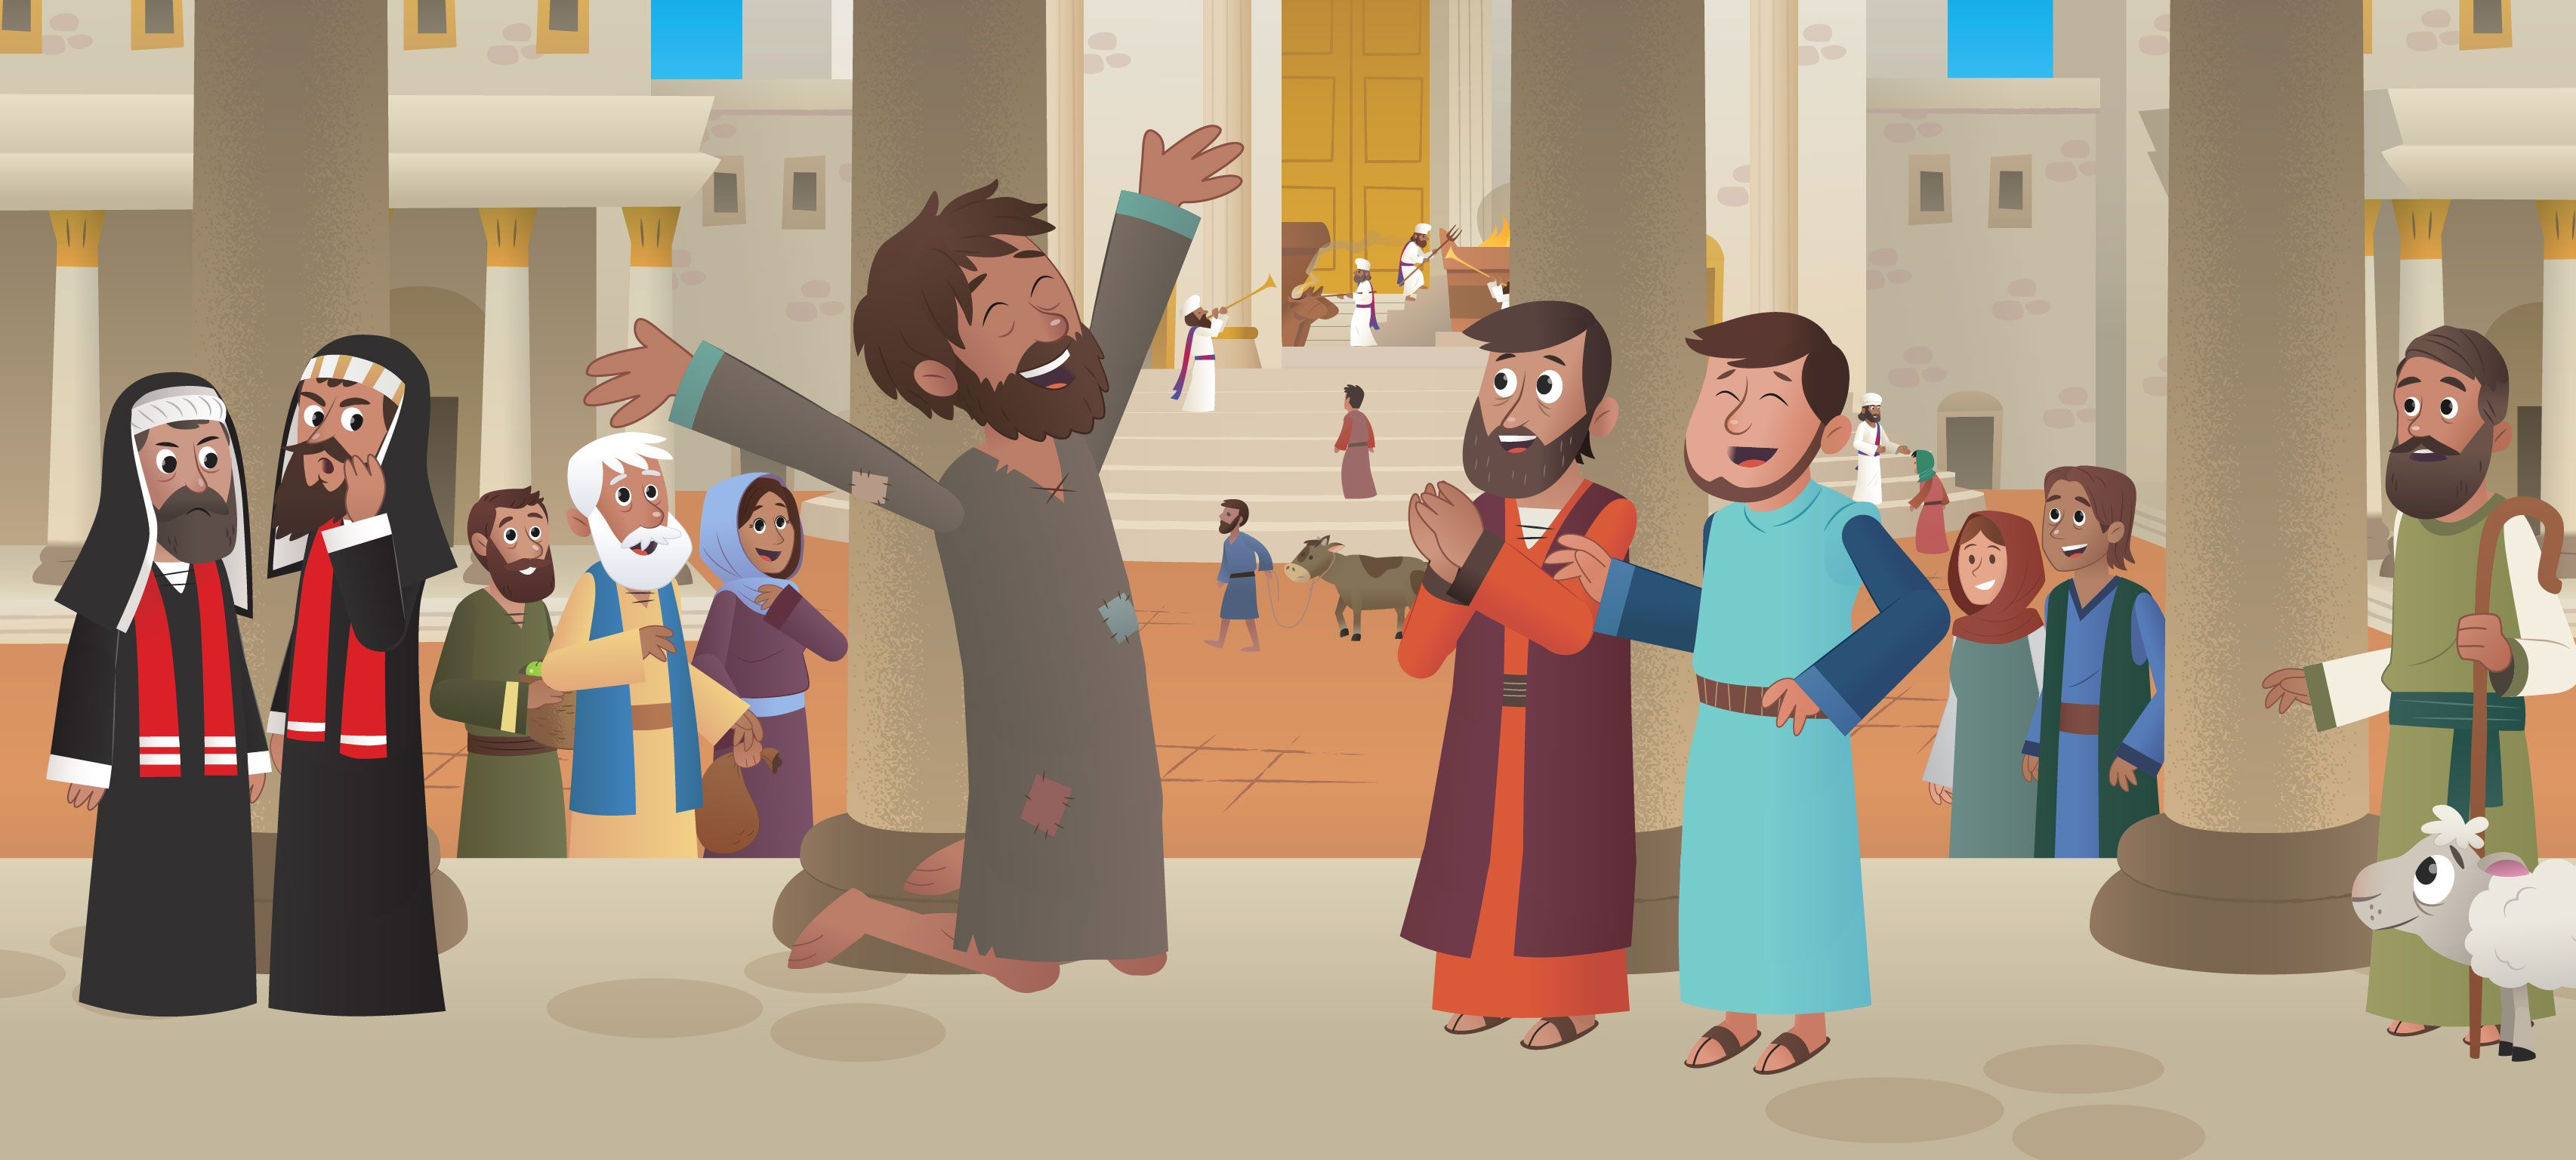 New Bible App for Kids Story Peter Has a Vision